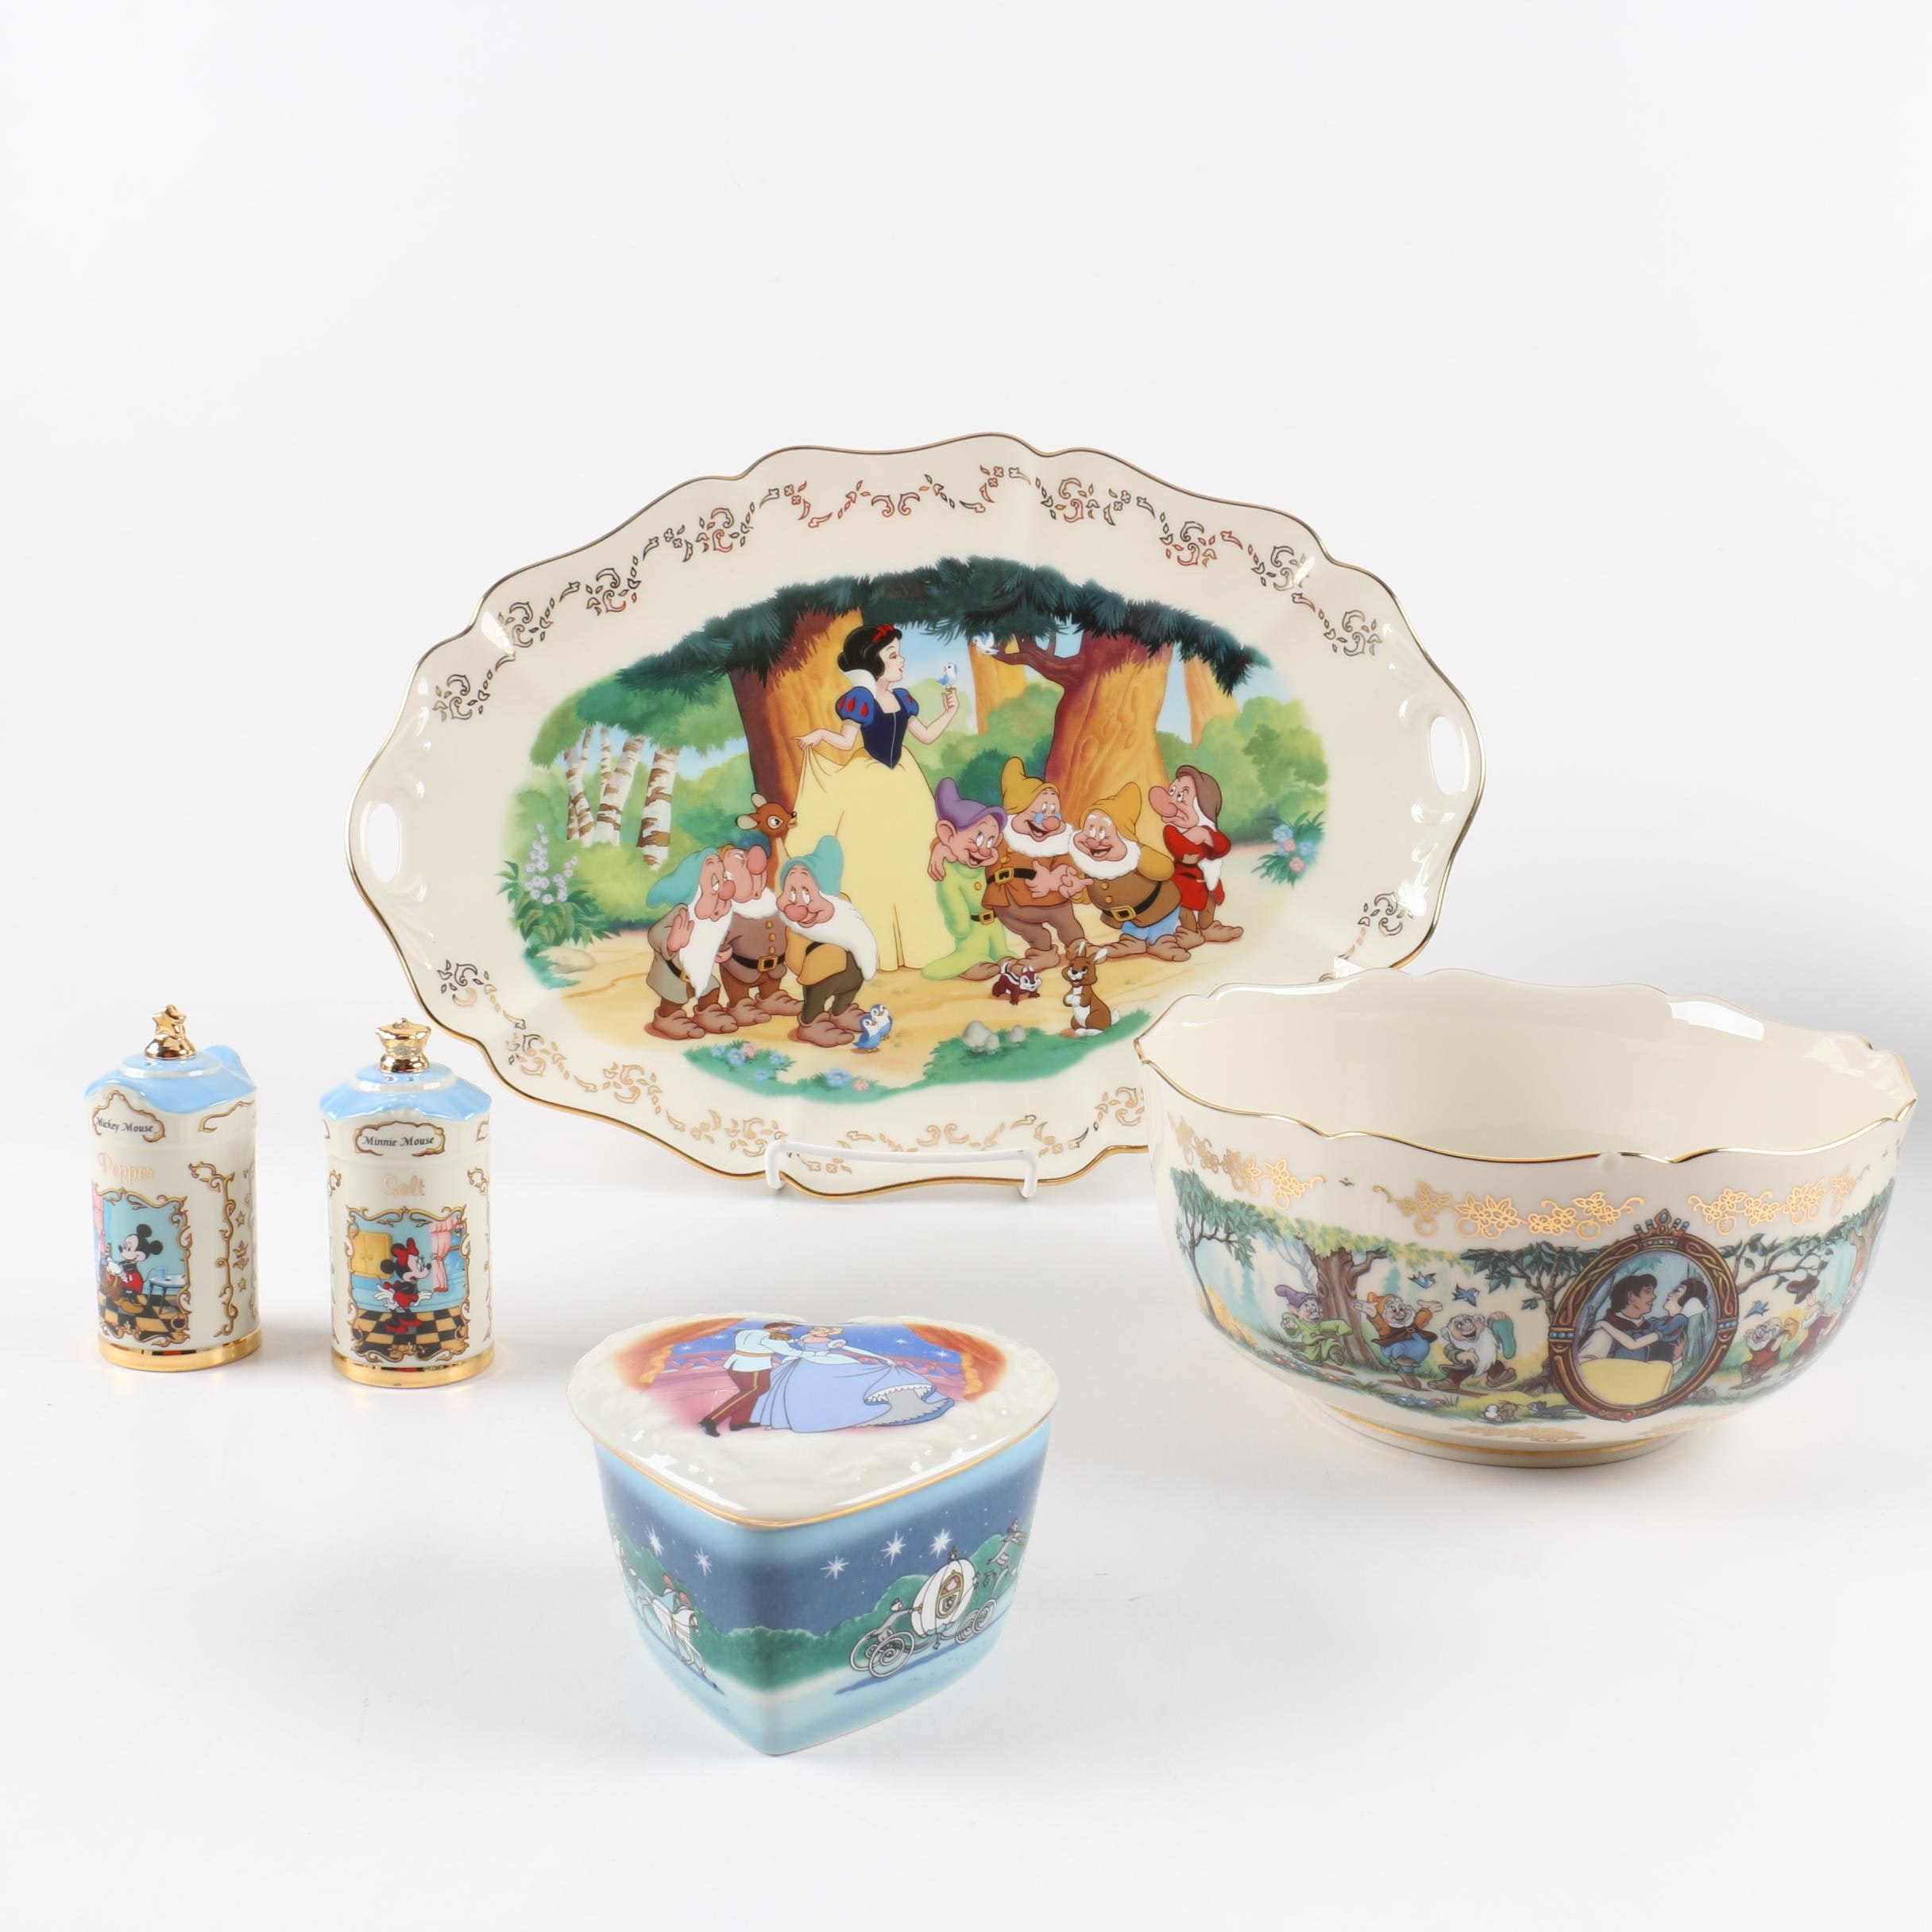 Limited Edition Lenox Disney Commemorative Servingware